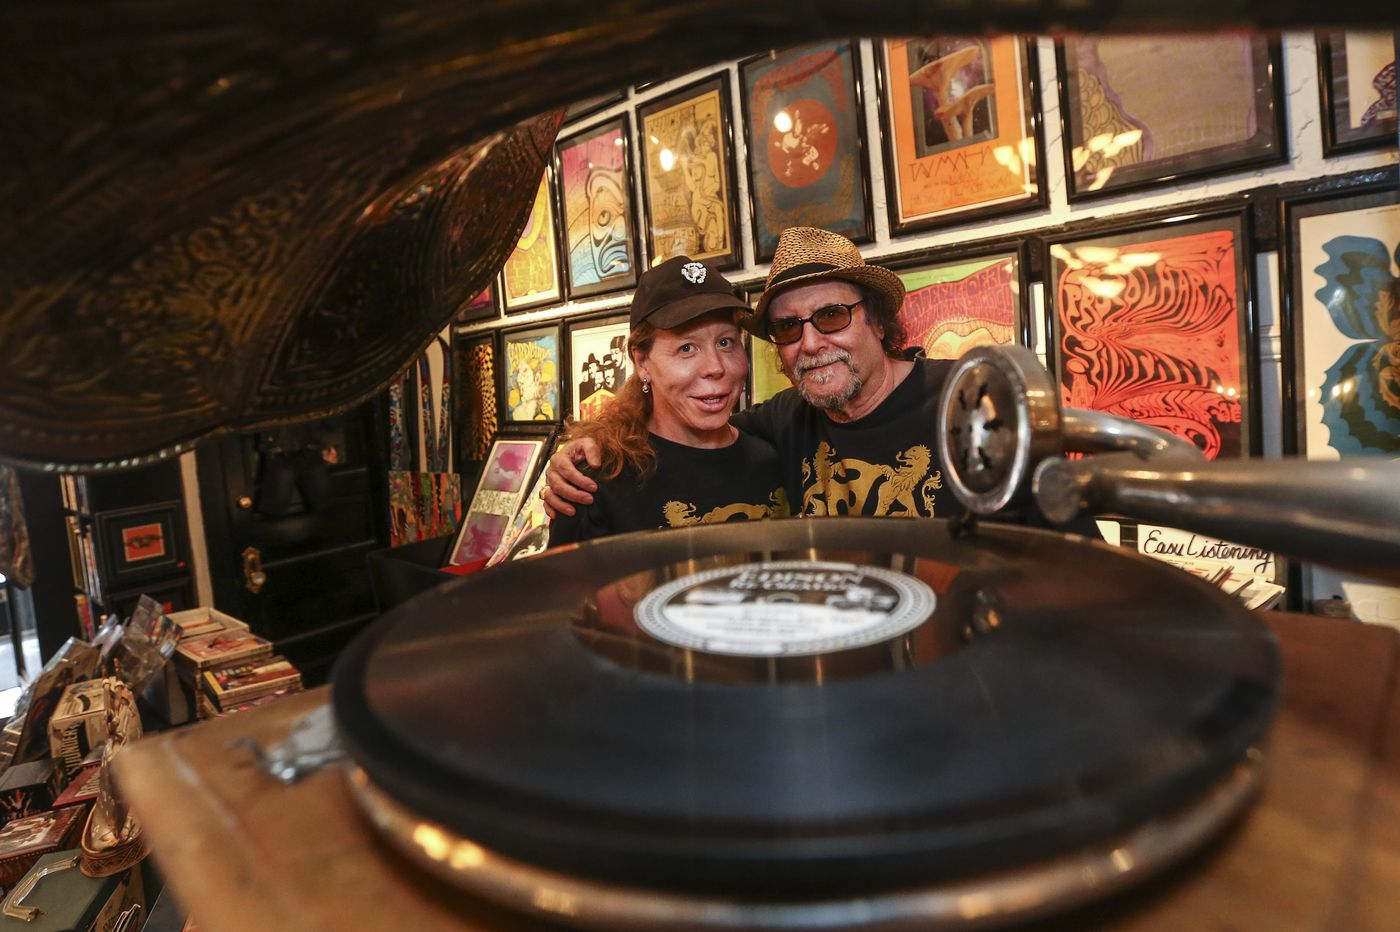 Bryn Mawr's Gold Million Records, formerly Plastic Fantastic, to close after 42 years